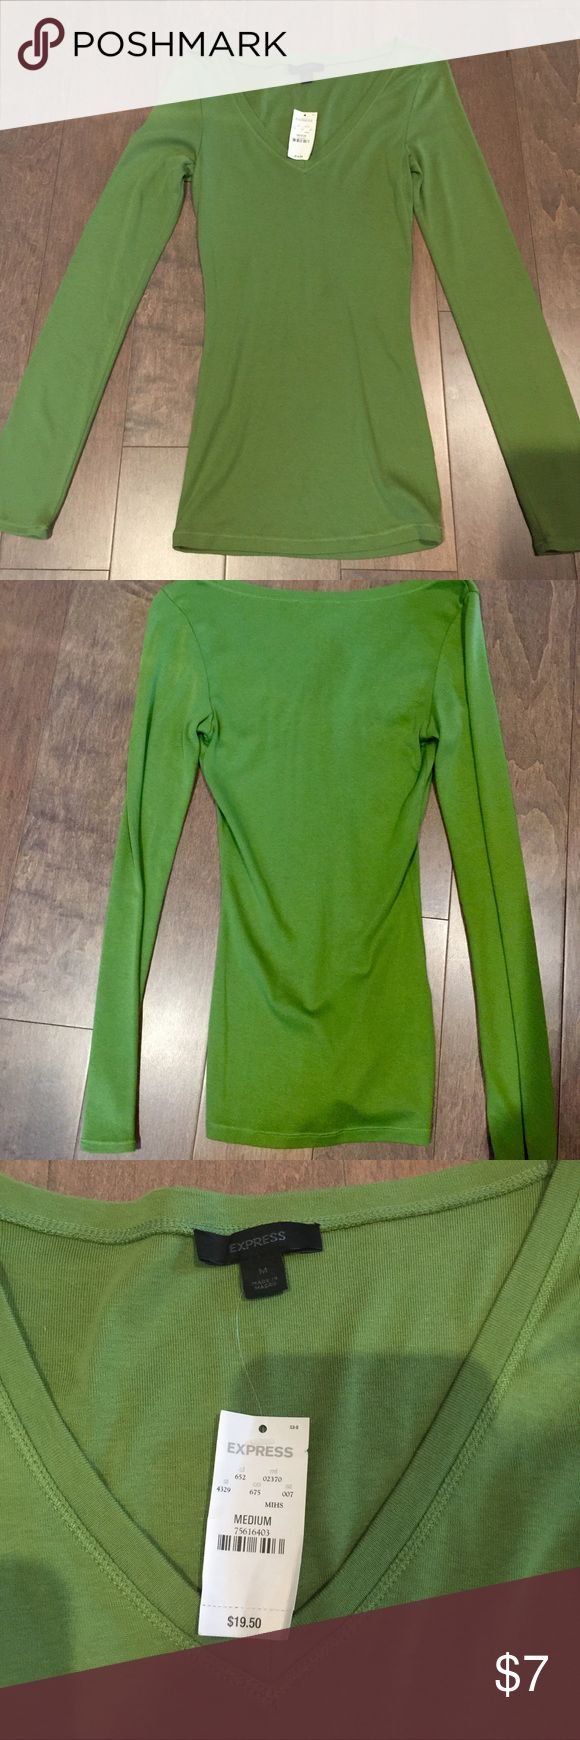 Express long sleeve v-neck woman's size med new Express long sleeve v-neck green woman's size med new with tags mint condition paid 19.50 great deal Express Tops Tees - Long Sleeve